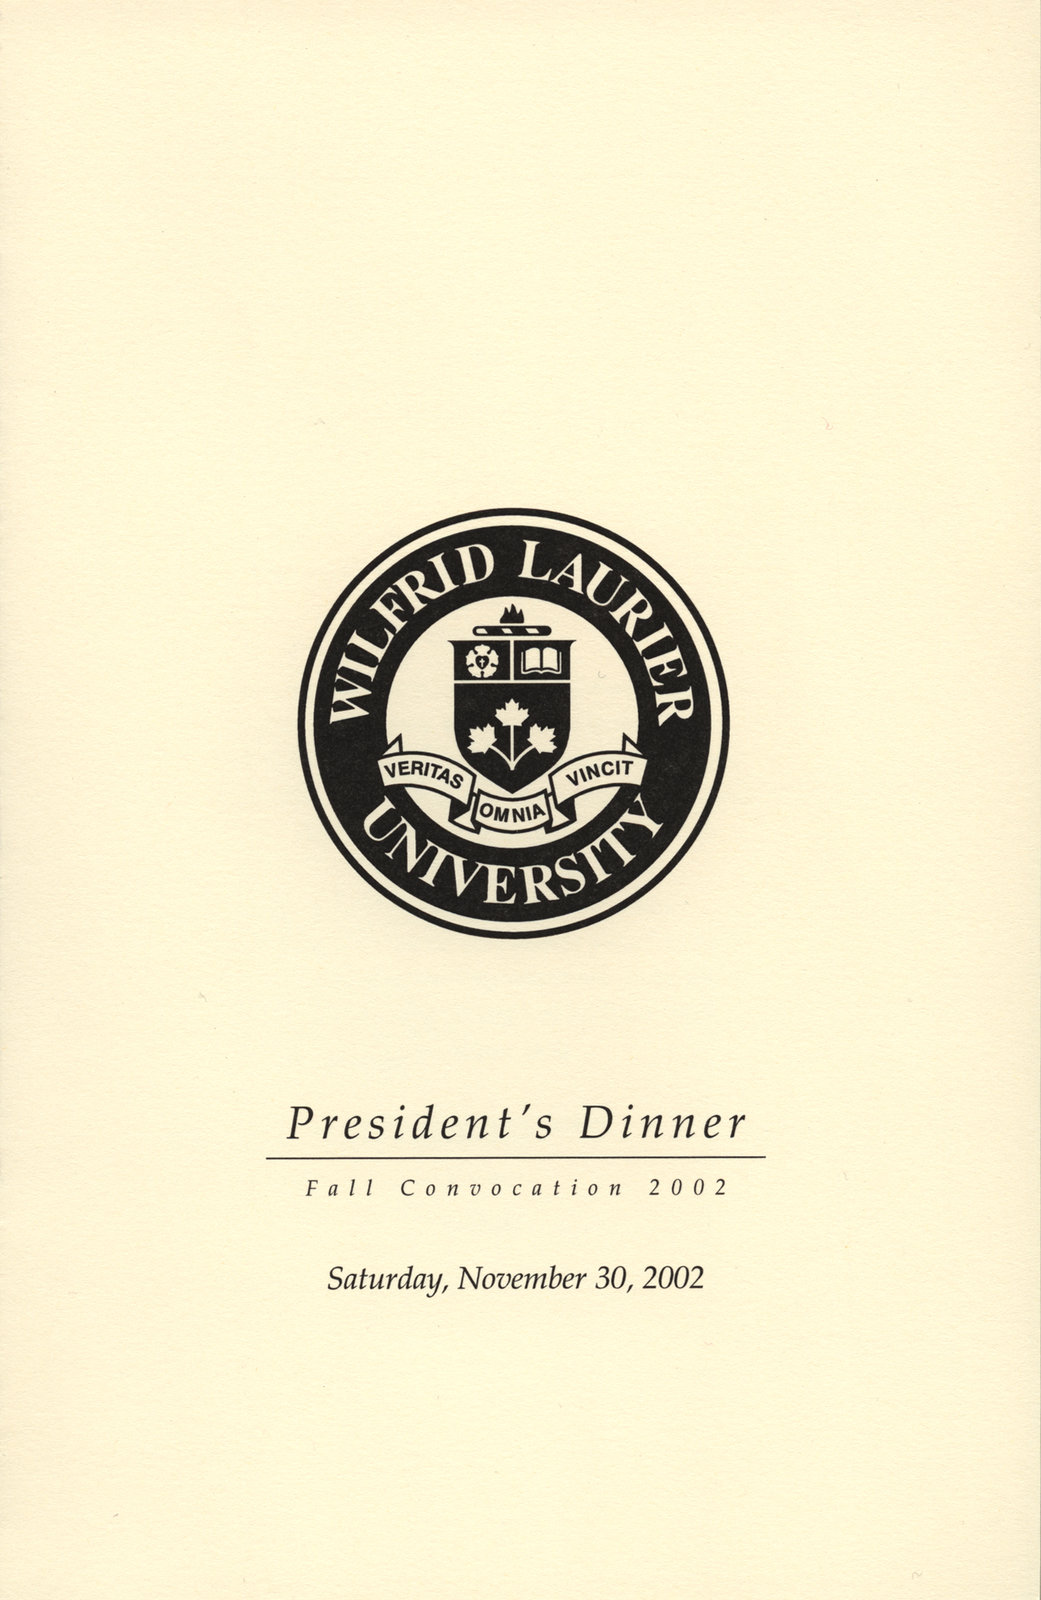 Wilfrid Laurier University fall convocation President's Dinner program, 2002